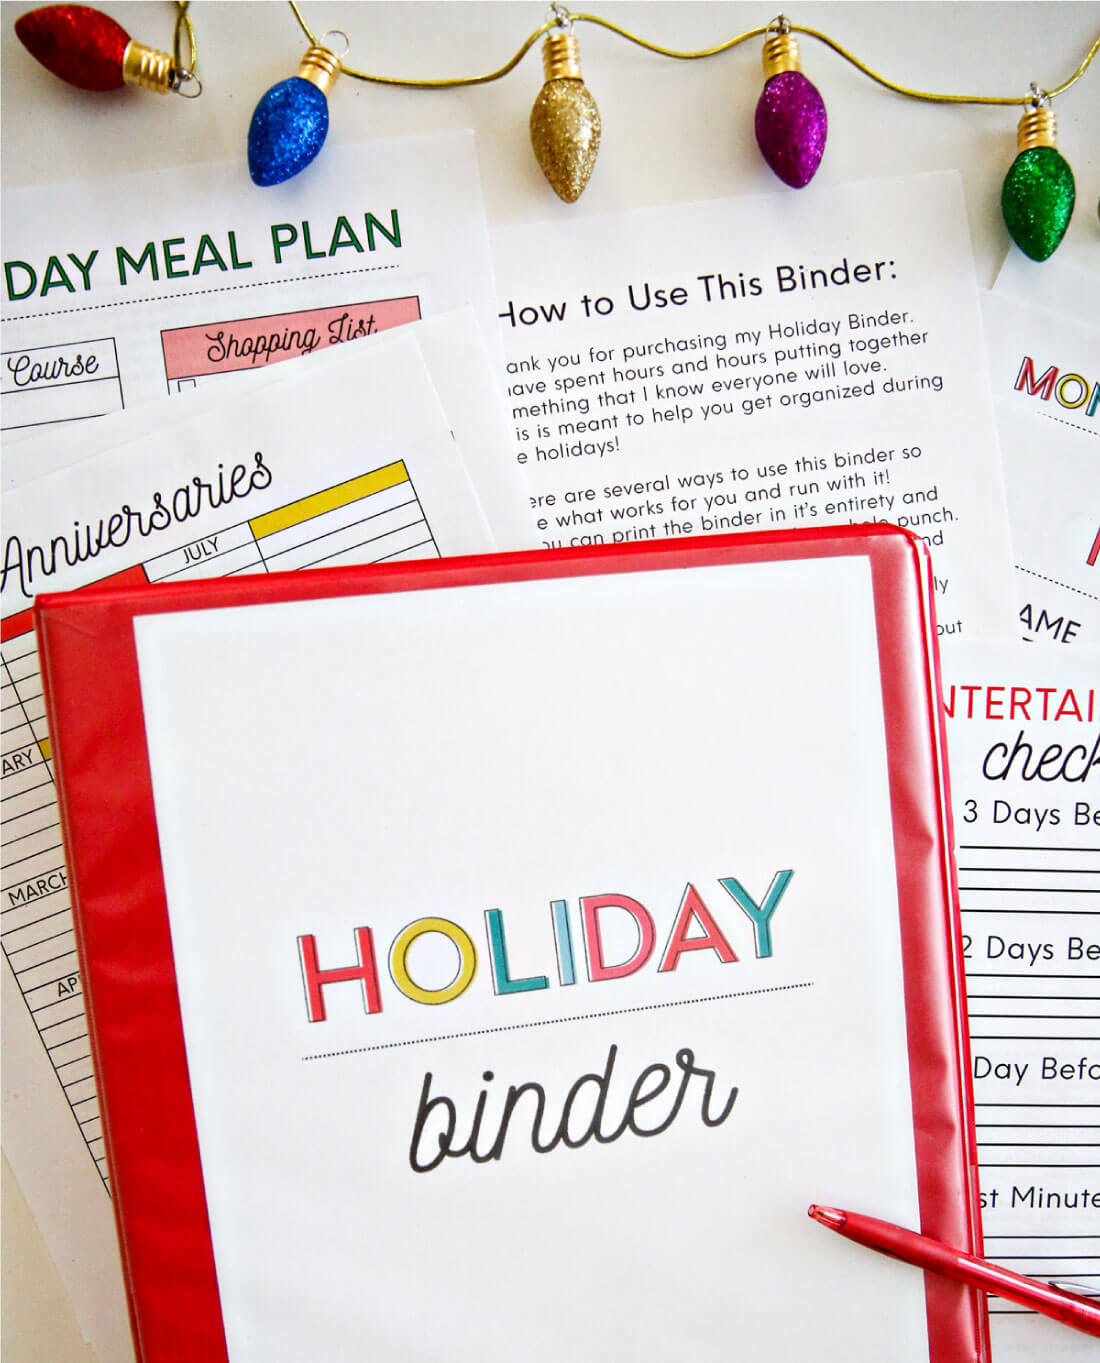 Printable Holiday Binder - get the entire binder to download and print for the holidays.